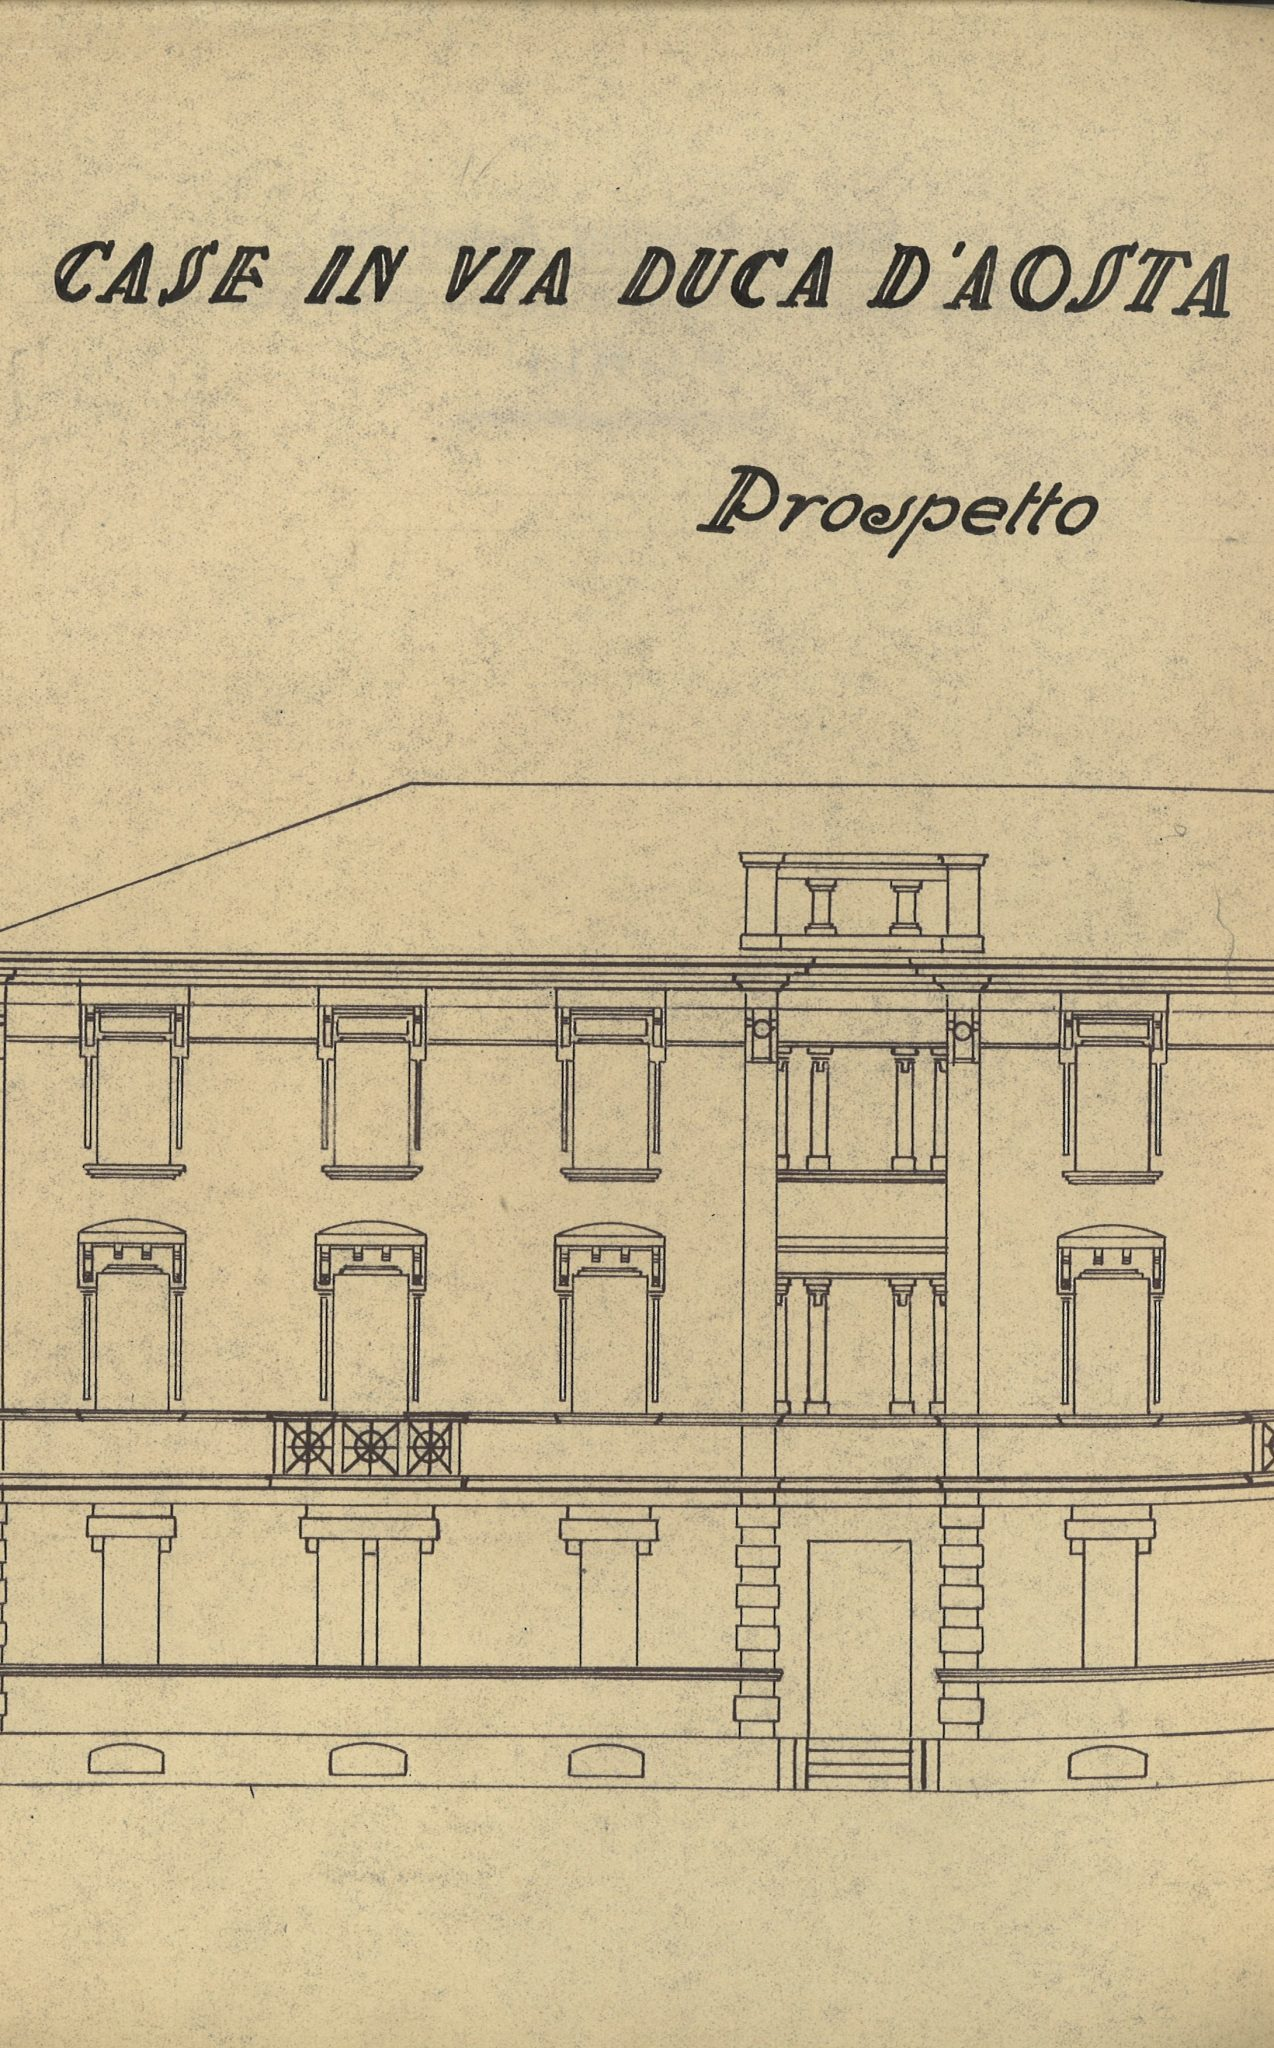 Prospetto di edificio IFACP in Forli (1937)